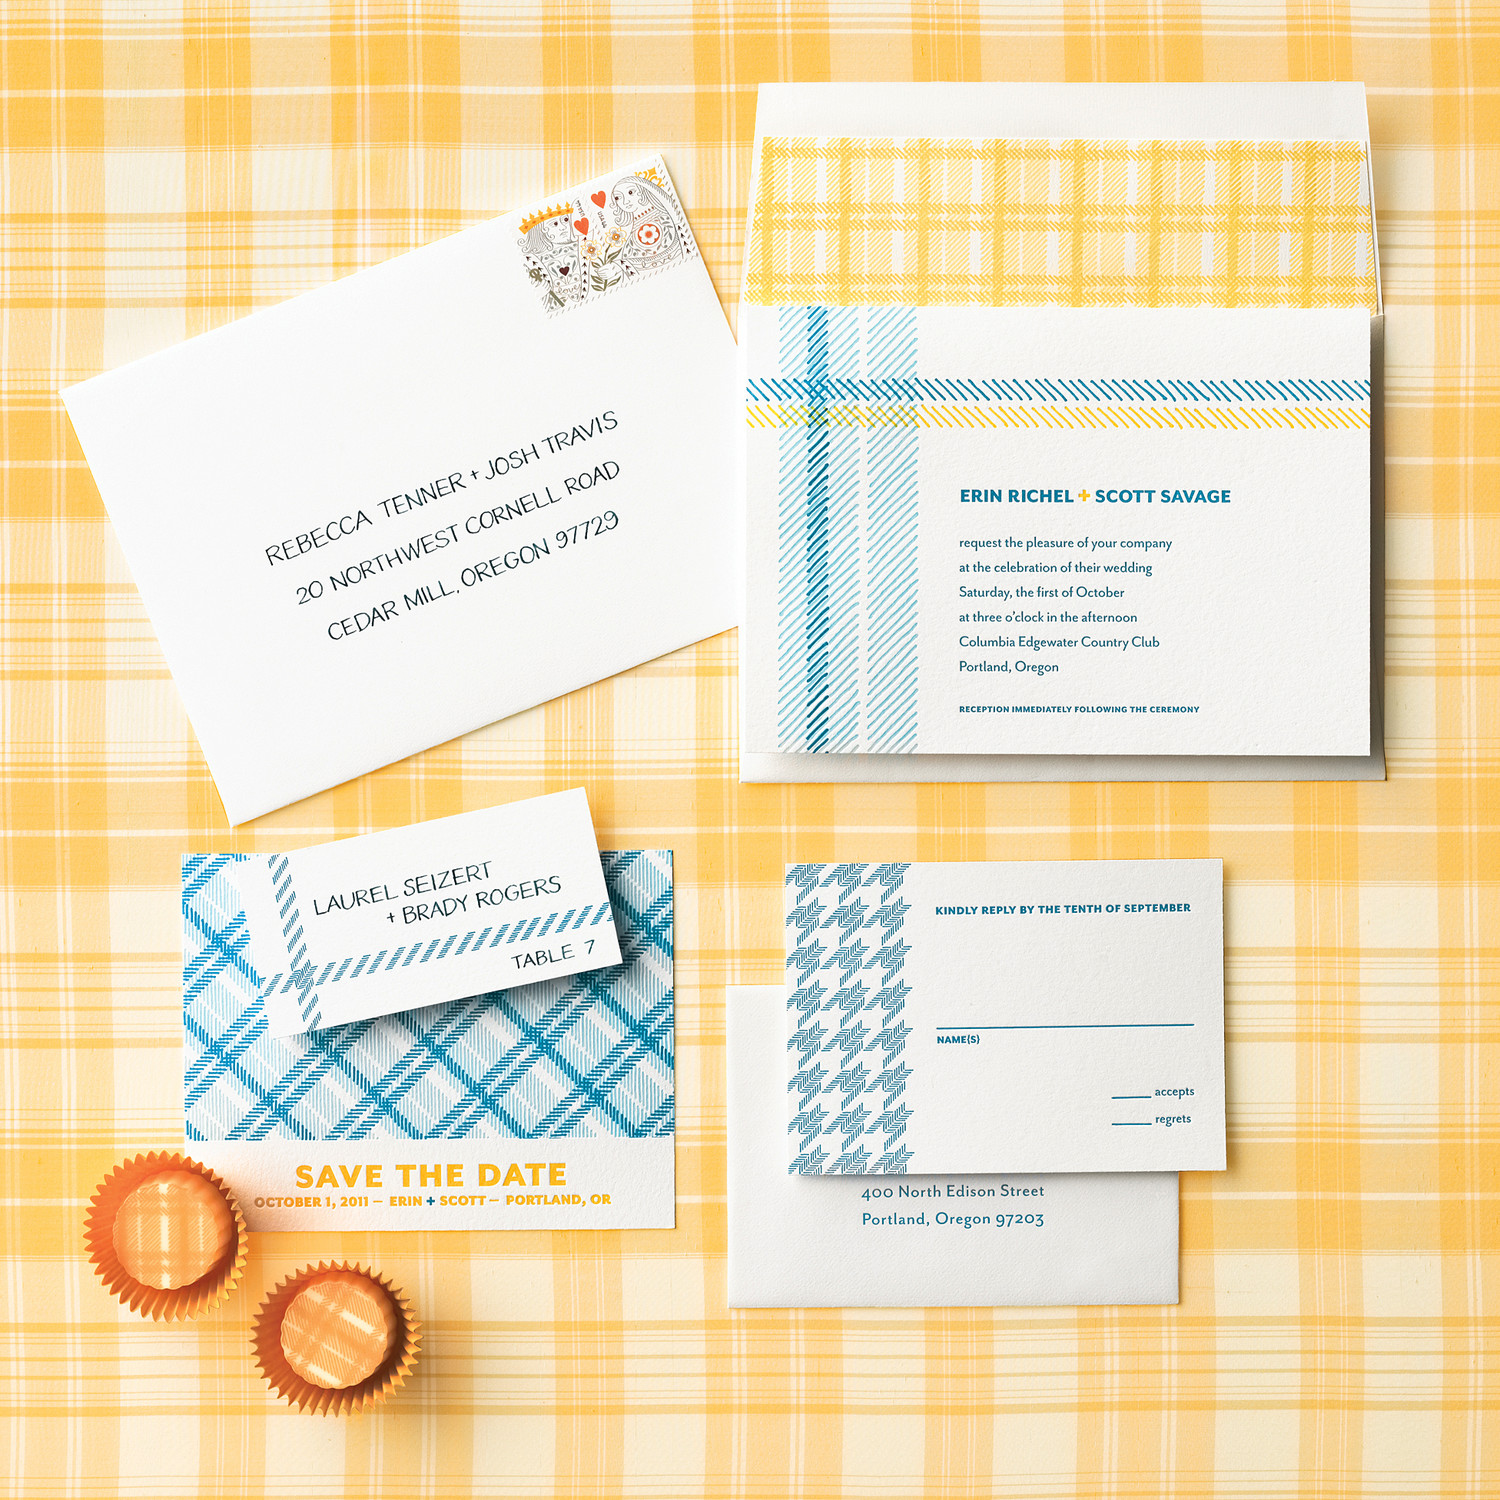 Fabric-Inspired Wedding Invitations | Martha Stewart Weddings